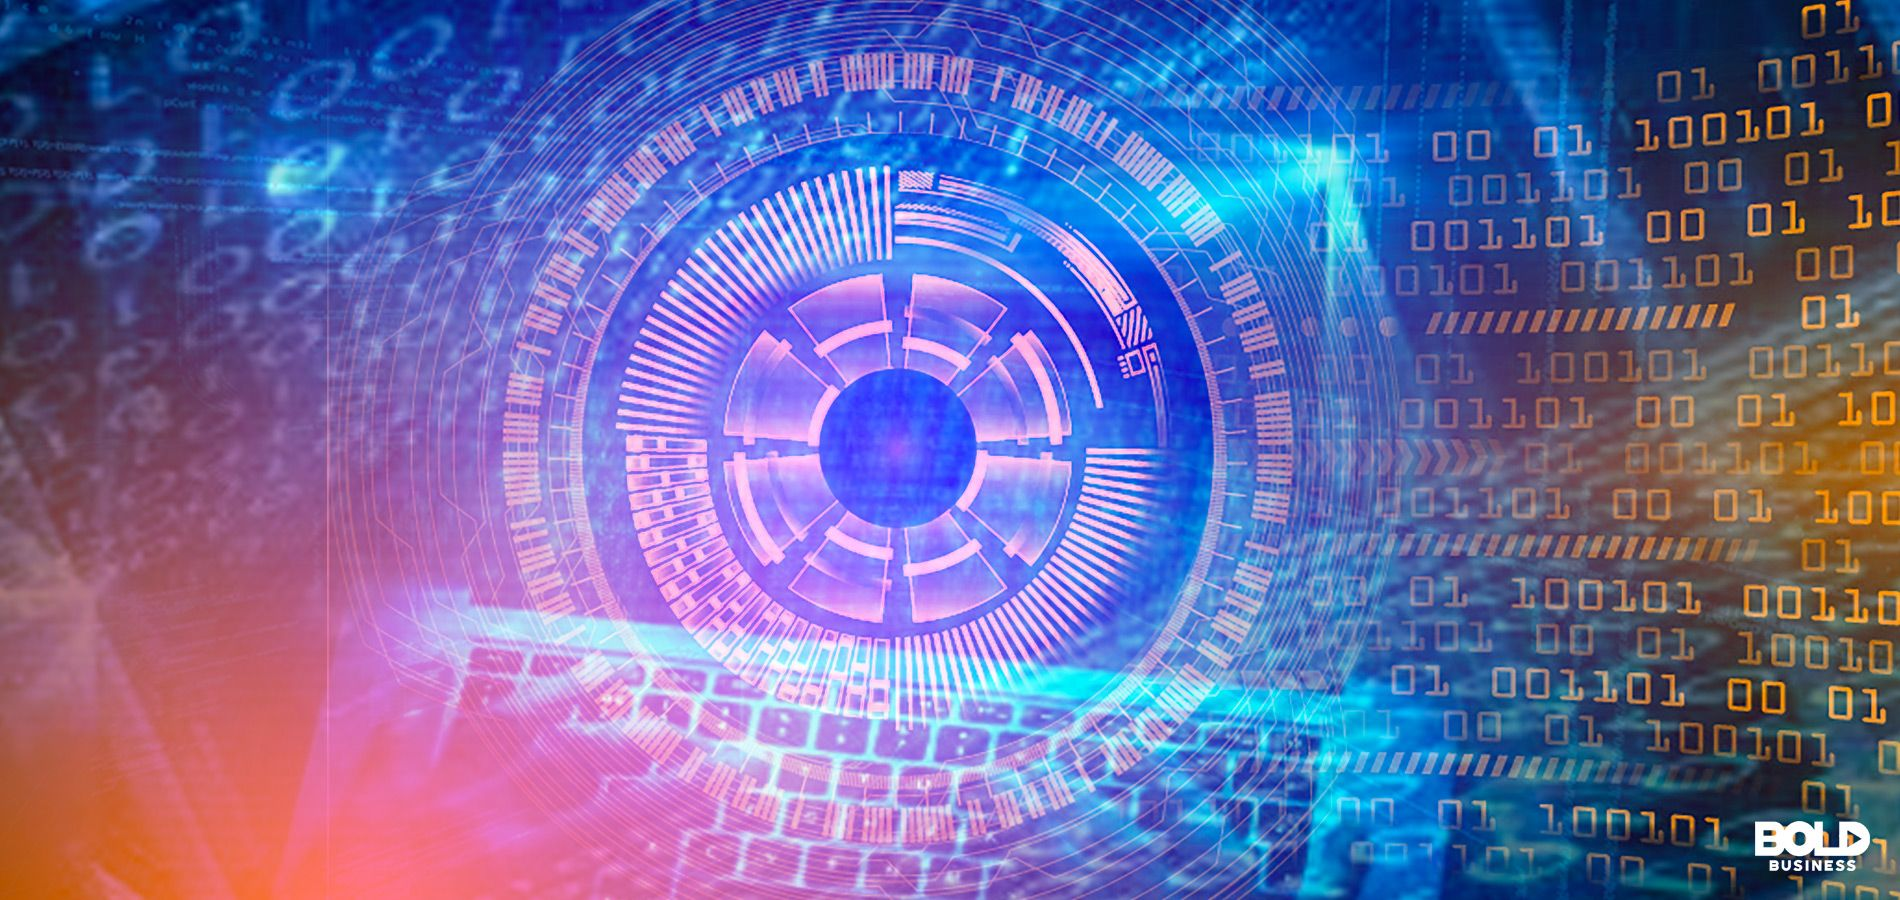 cyber security trends binary code